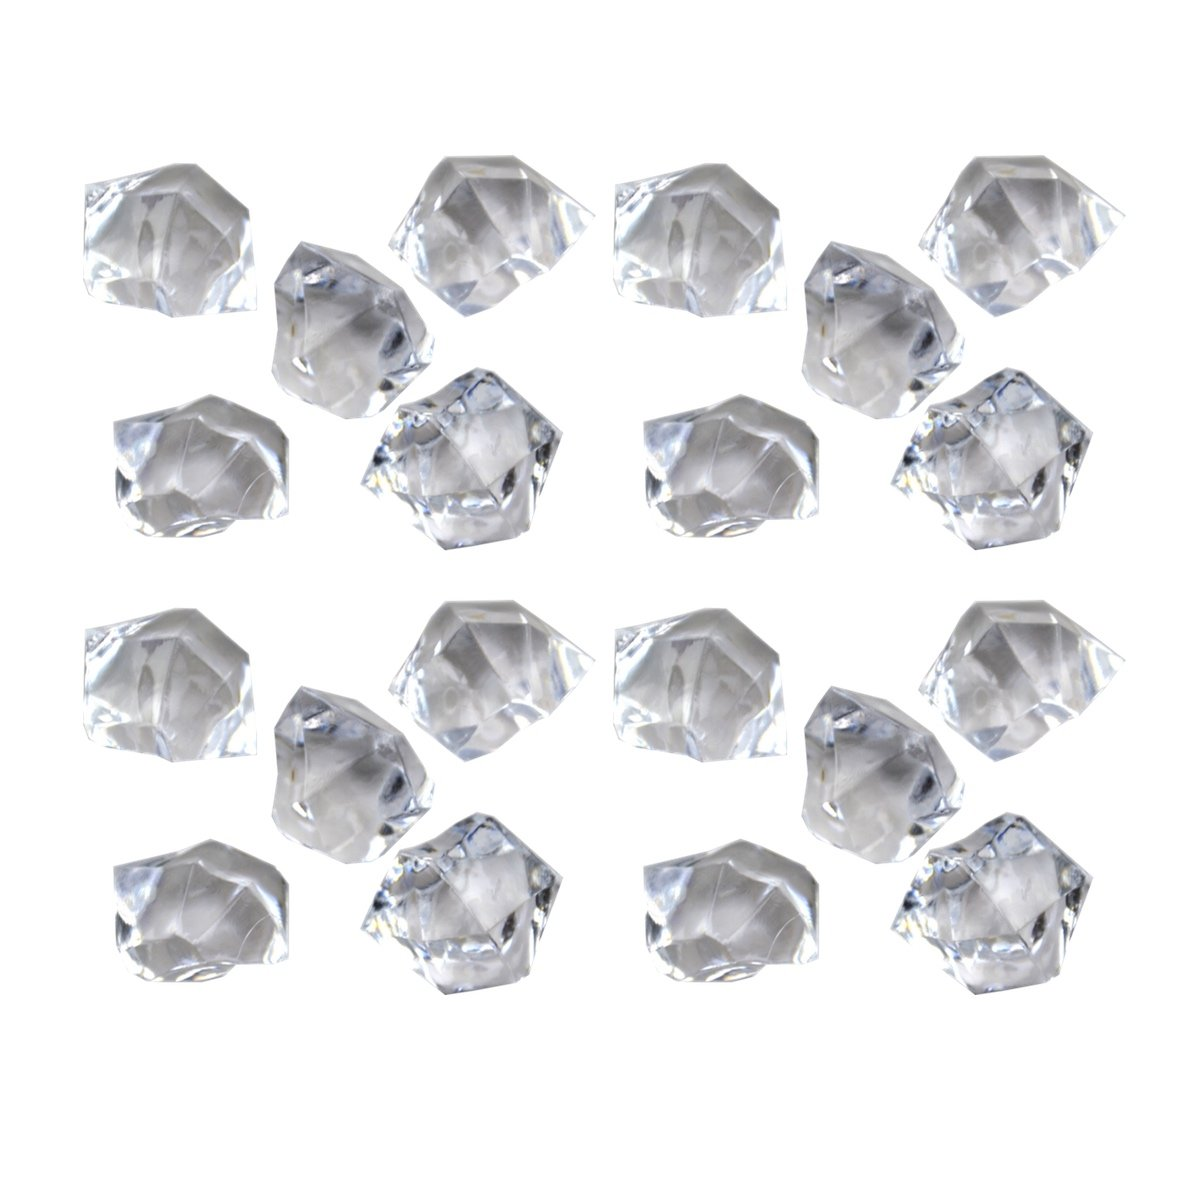 Acrylic Clear Ice Rock Cubes 300g//Bag Great Idea for Vase Fillers and Table Decorating